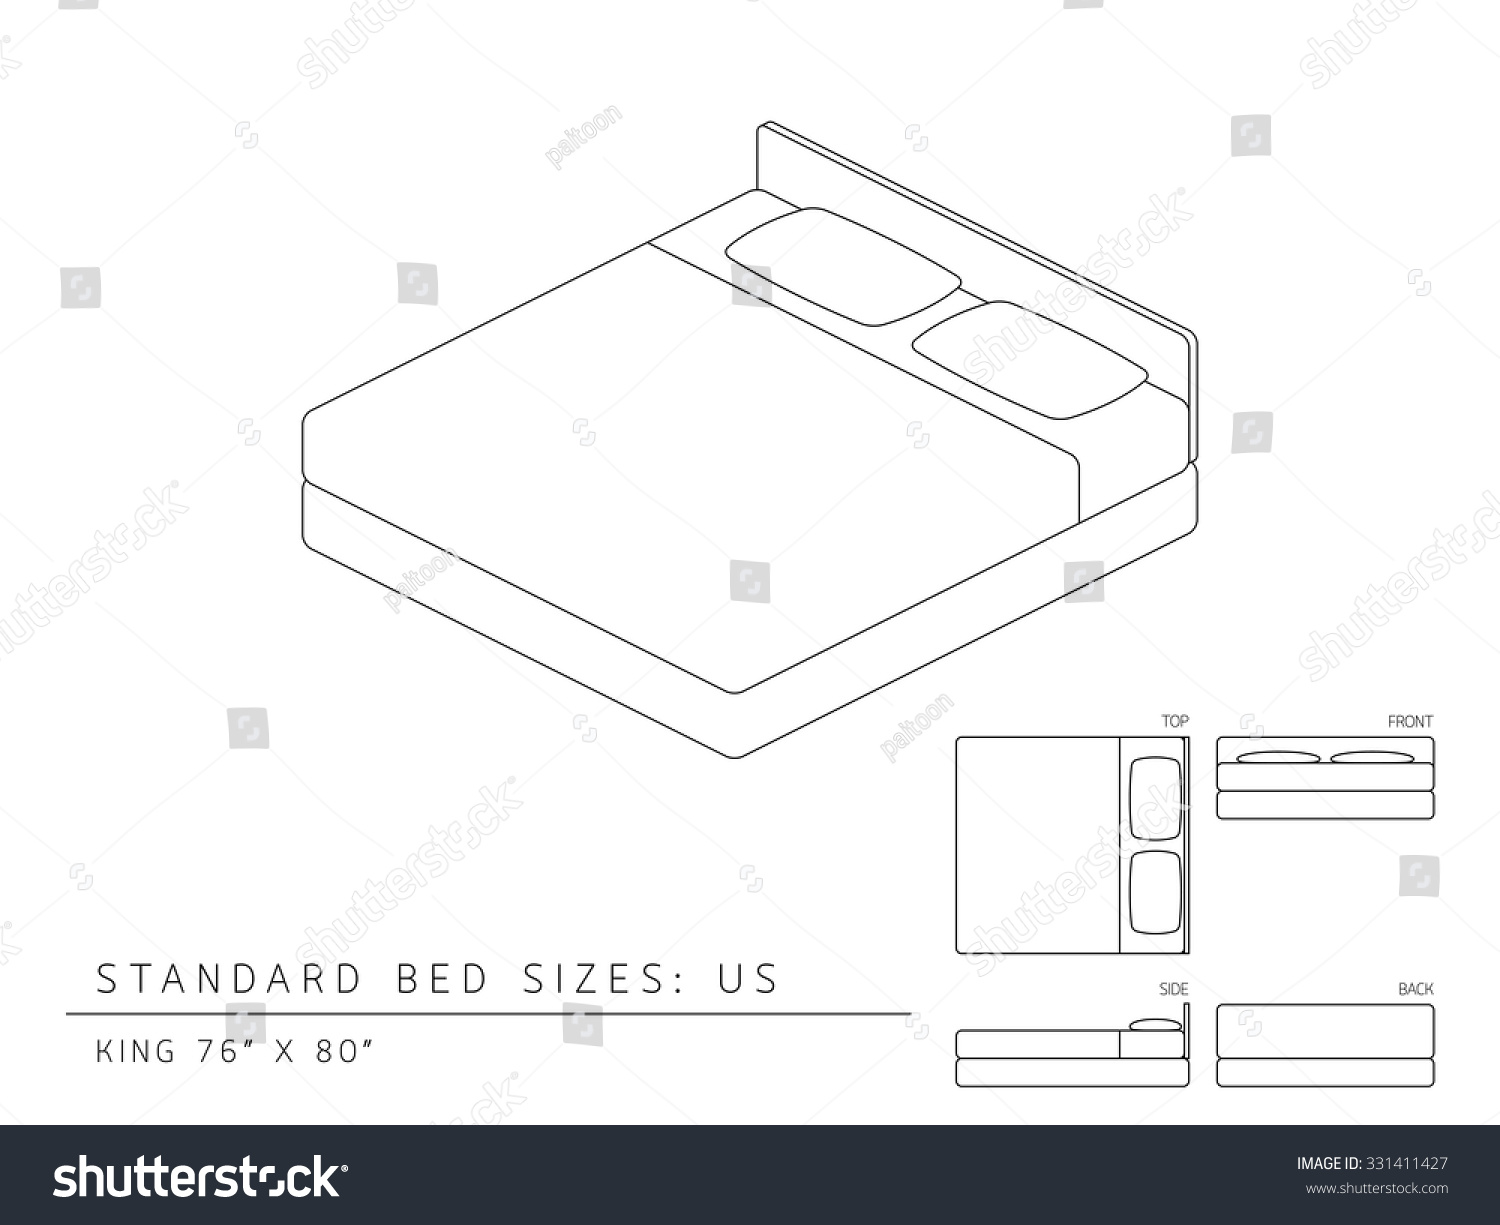 standard bed sizes of us united states of america king